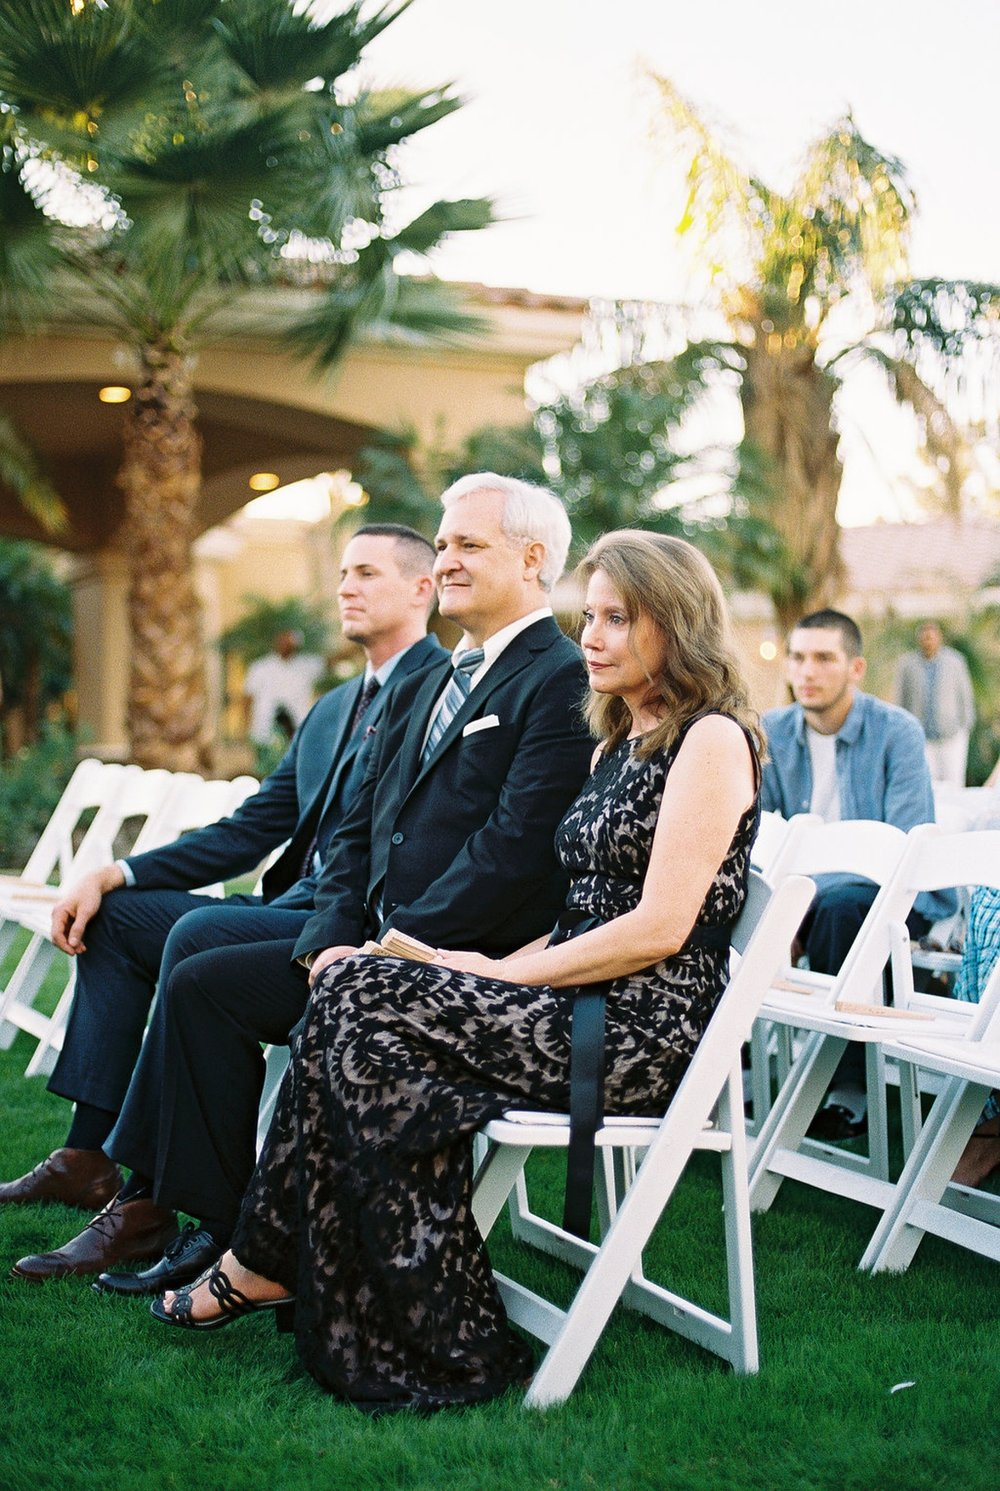 Phi and Alannas Backyard Wedding in Palm Springs California 25.jpg